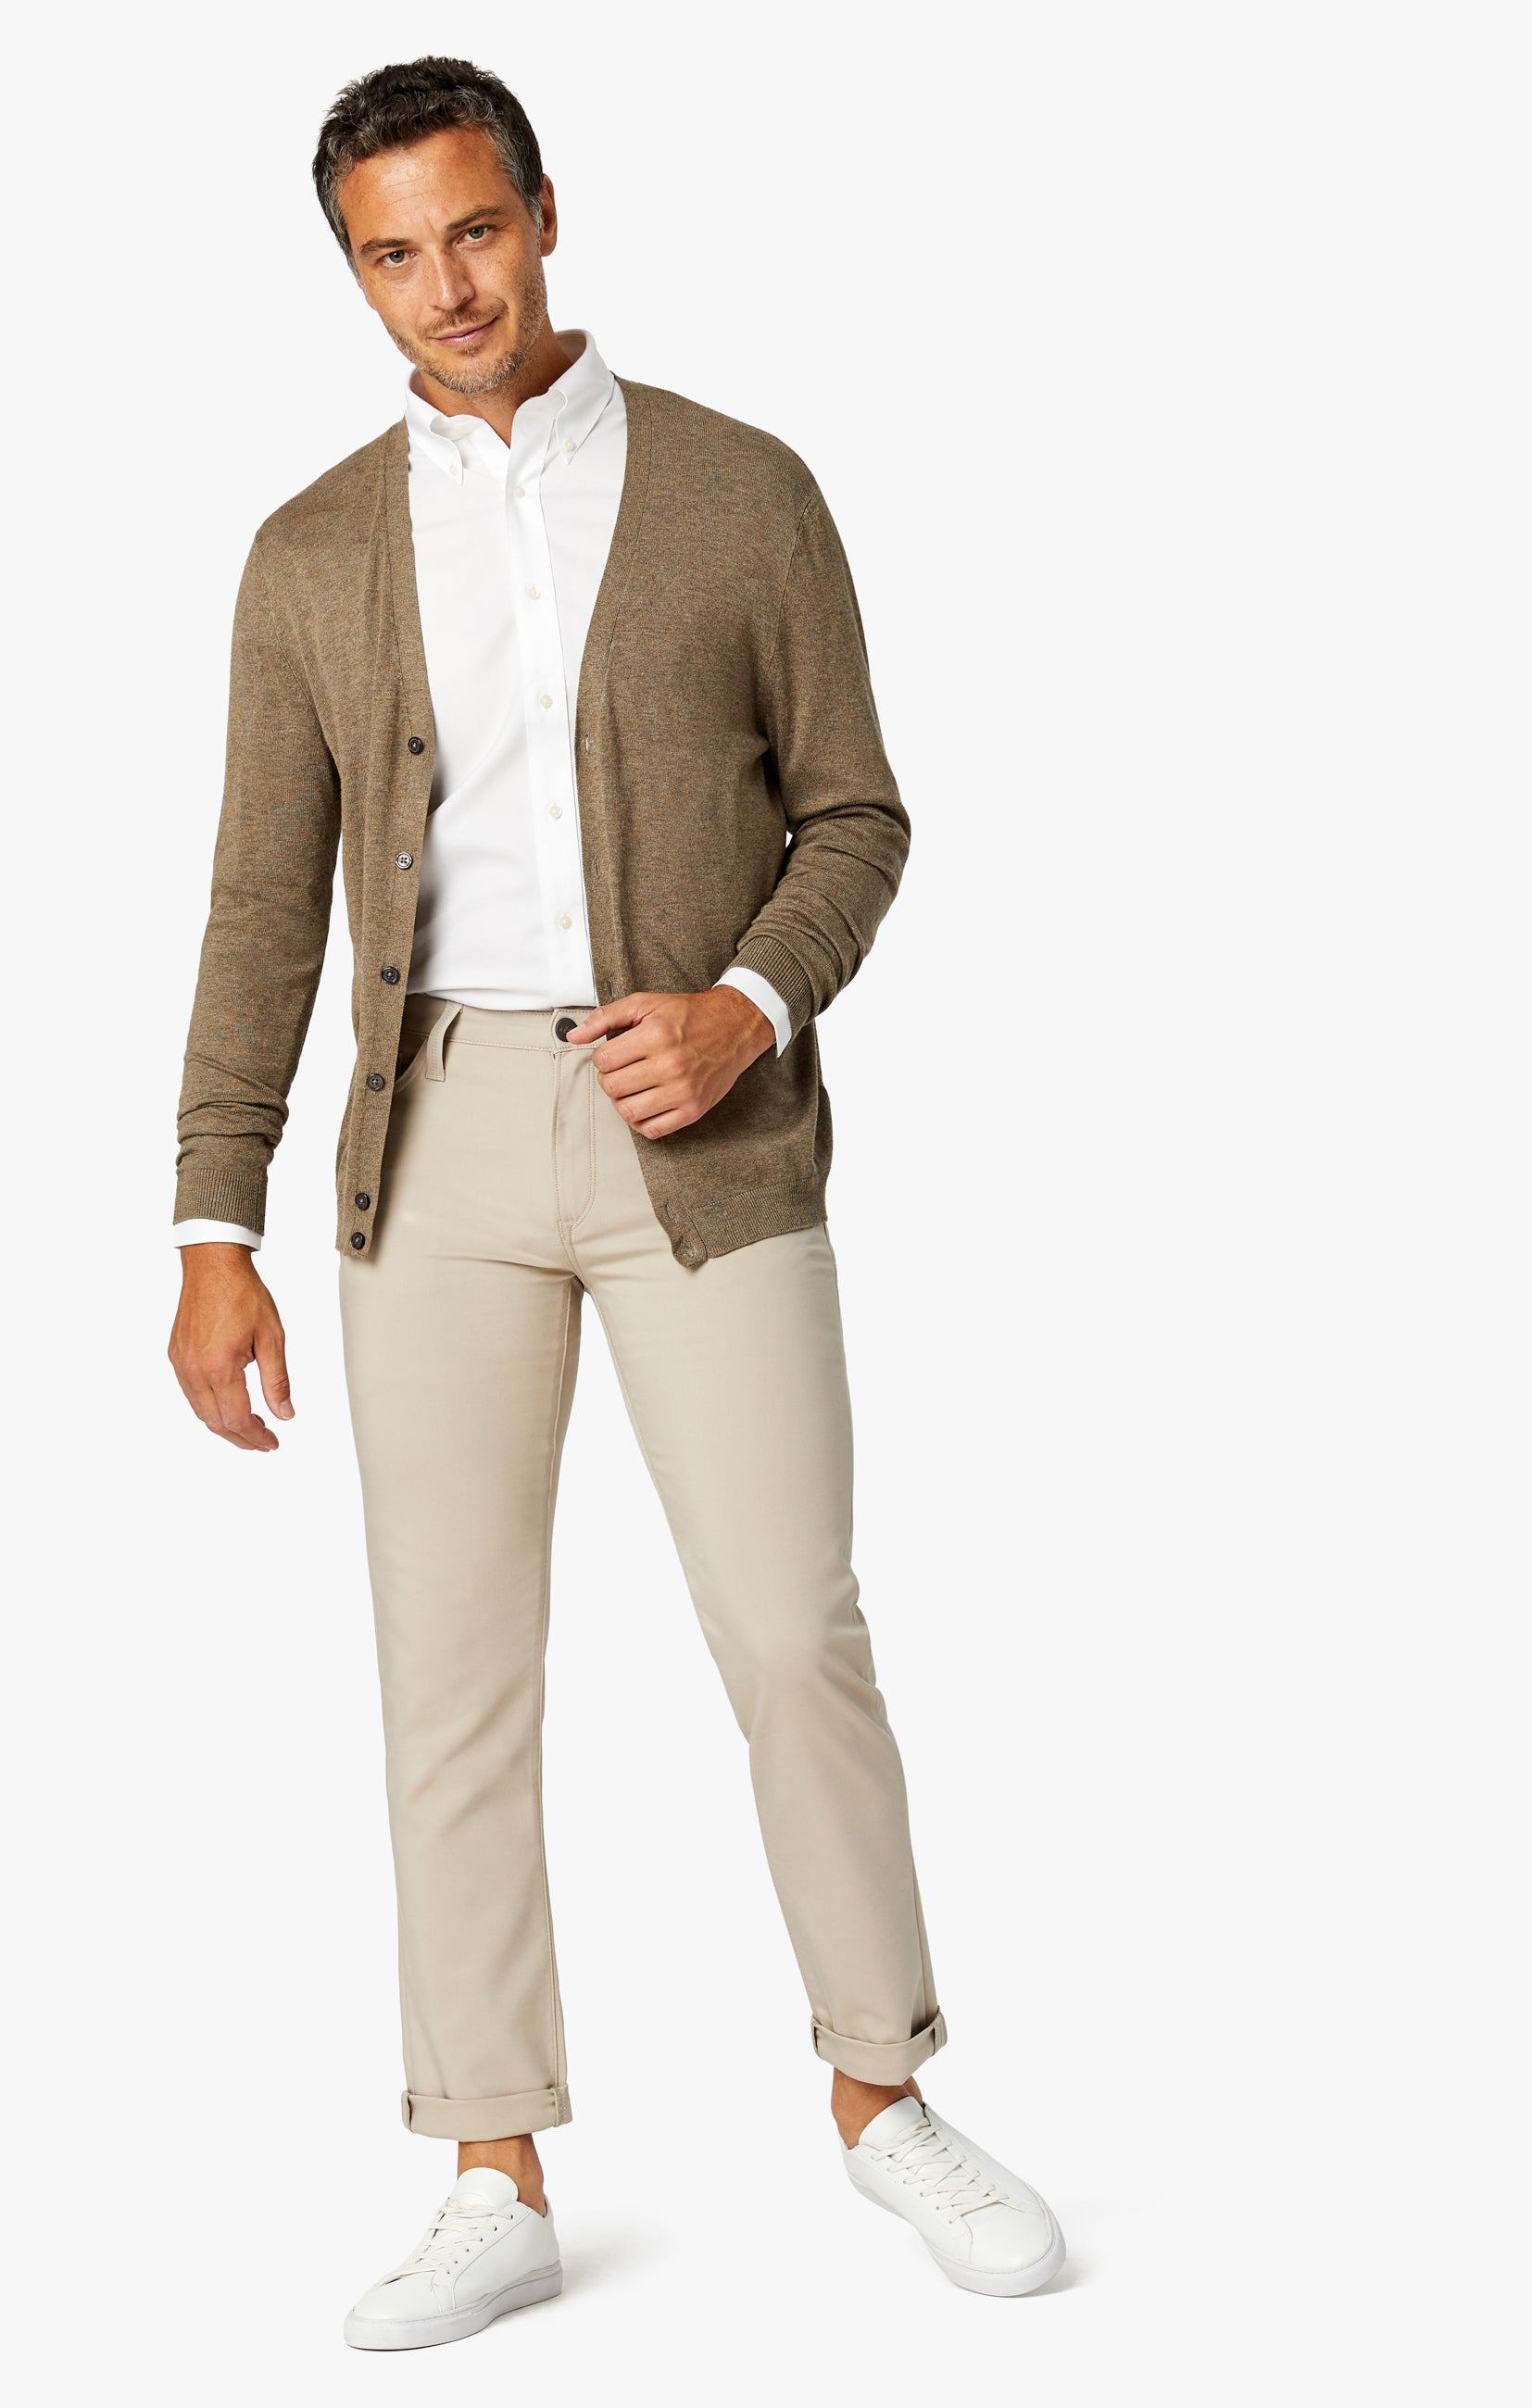 Courage Straight Leg Commuter Pants In Desert Image 1